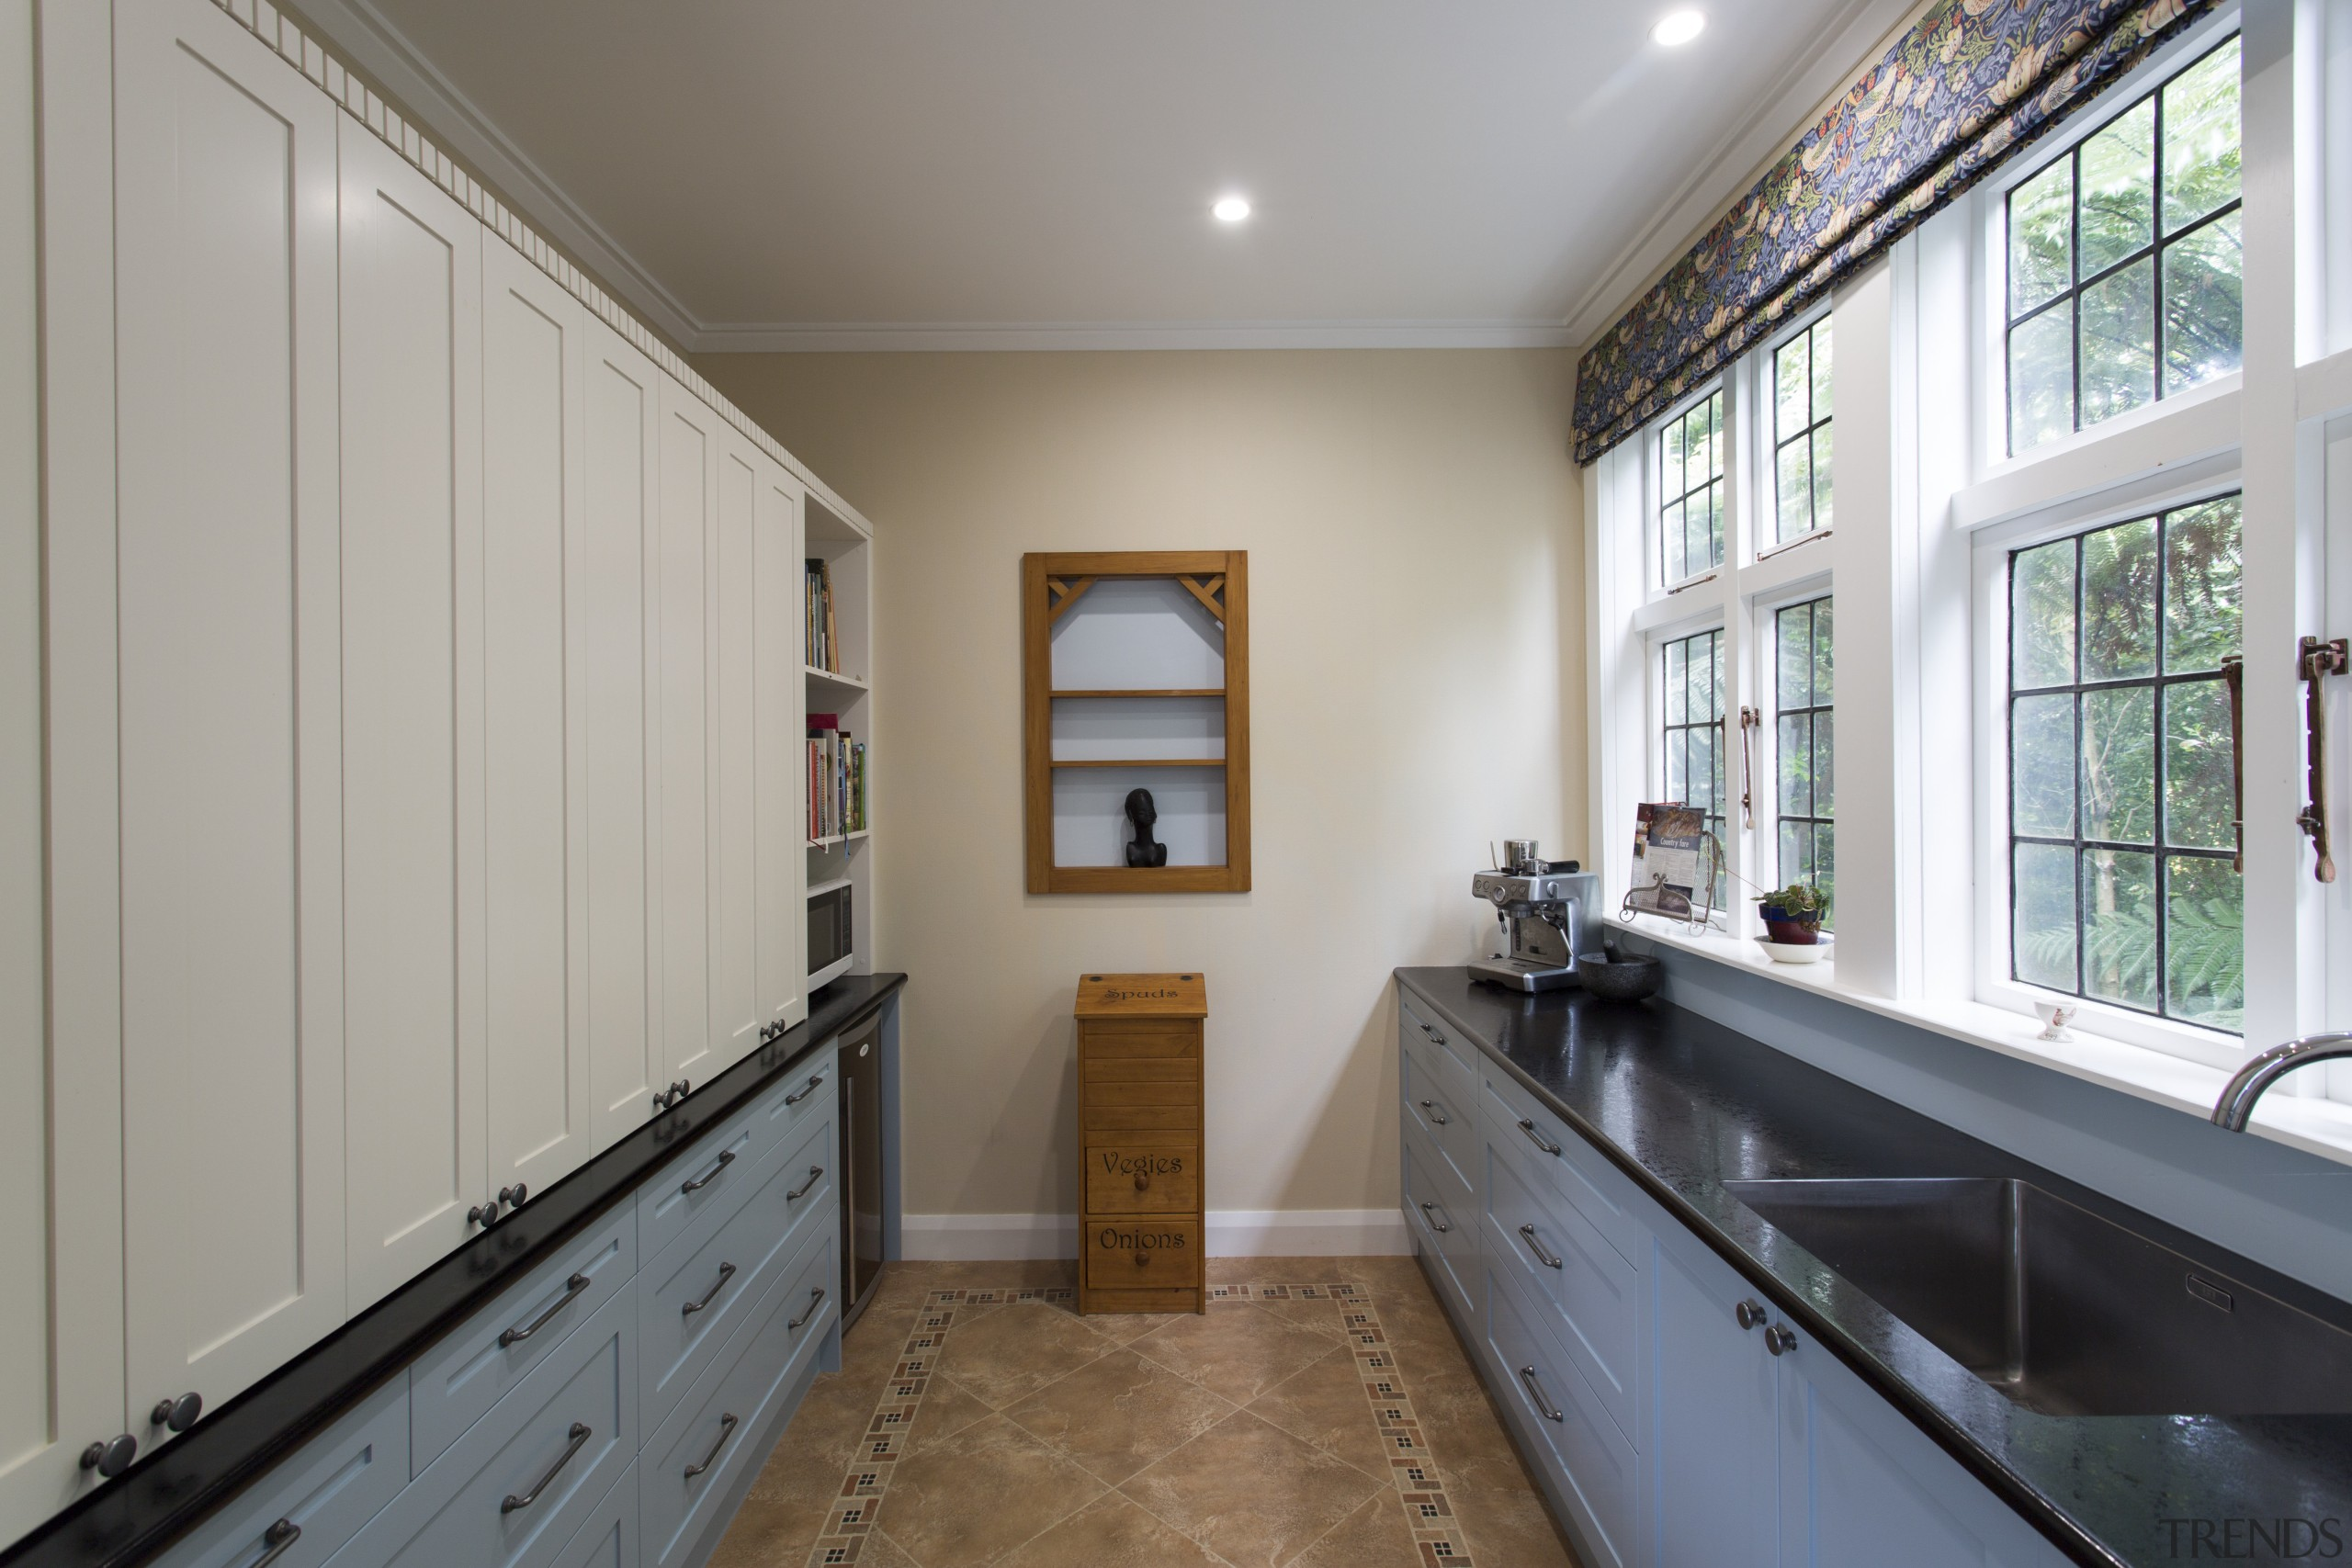 This kitchen was designed largely around the needs floor, home, house, property, real estate, room, window, wood, gray